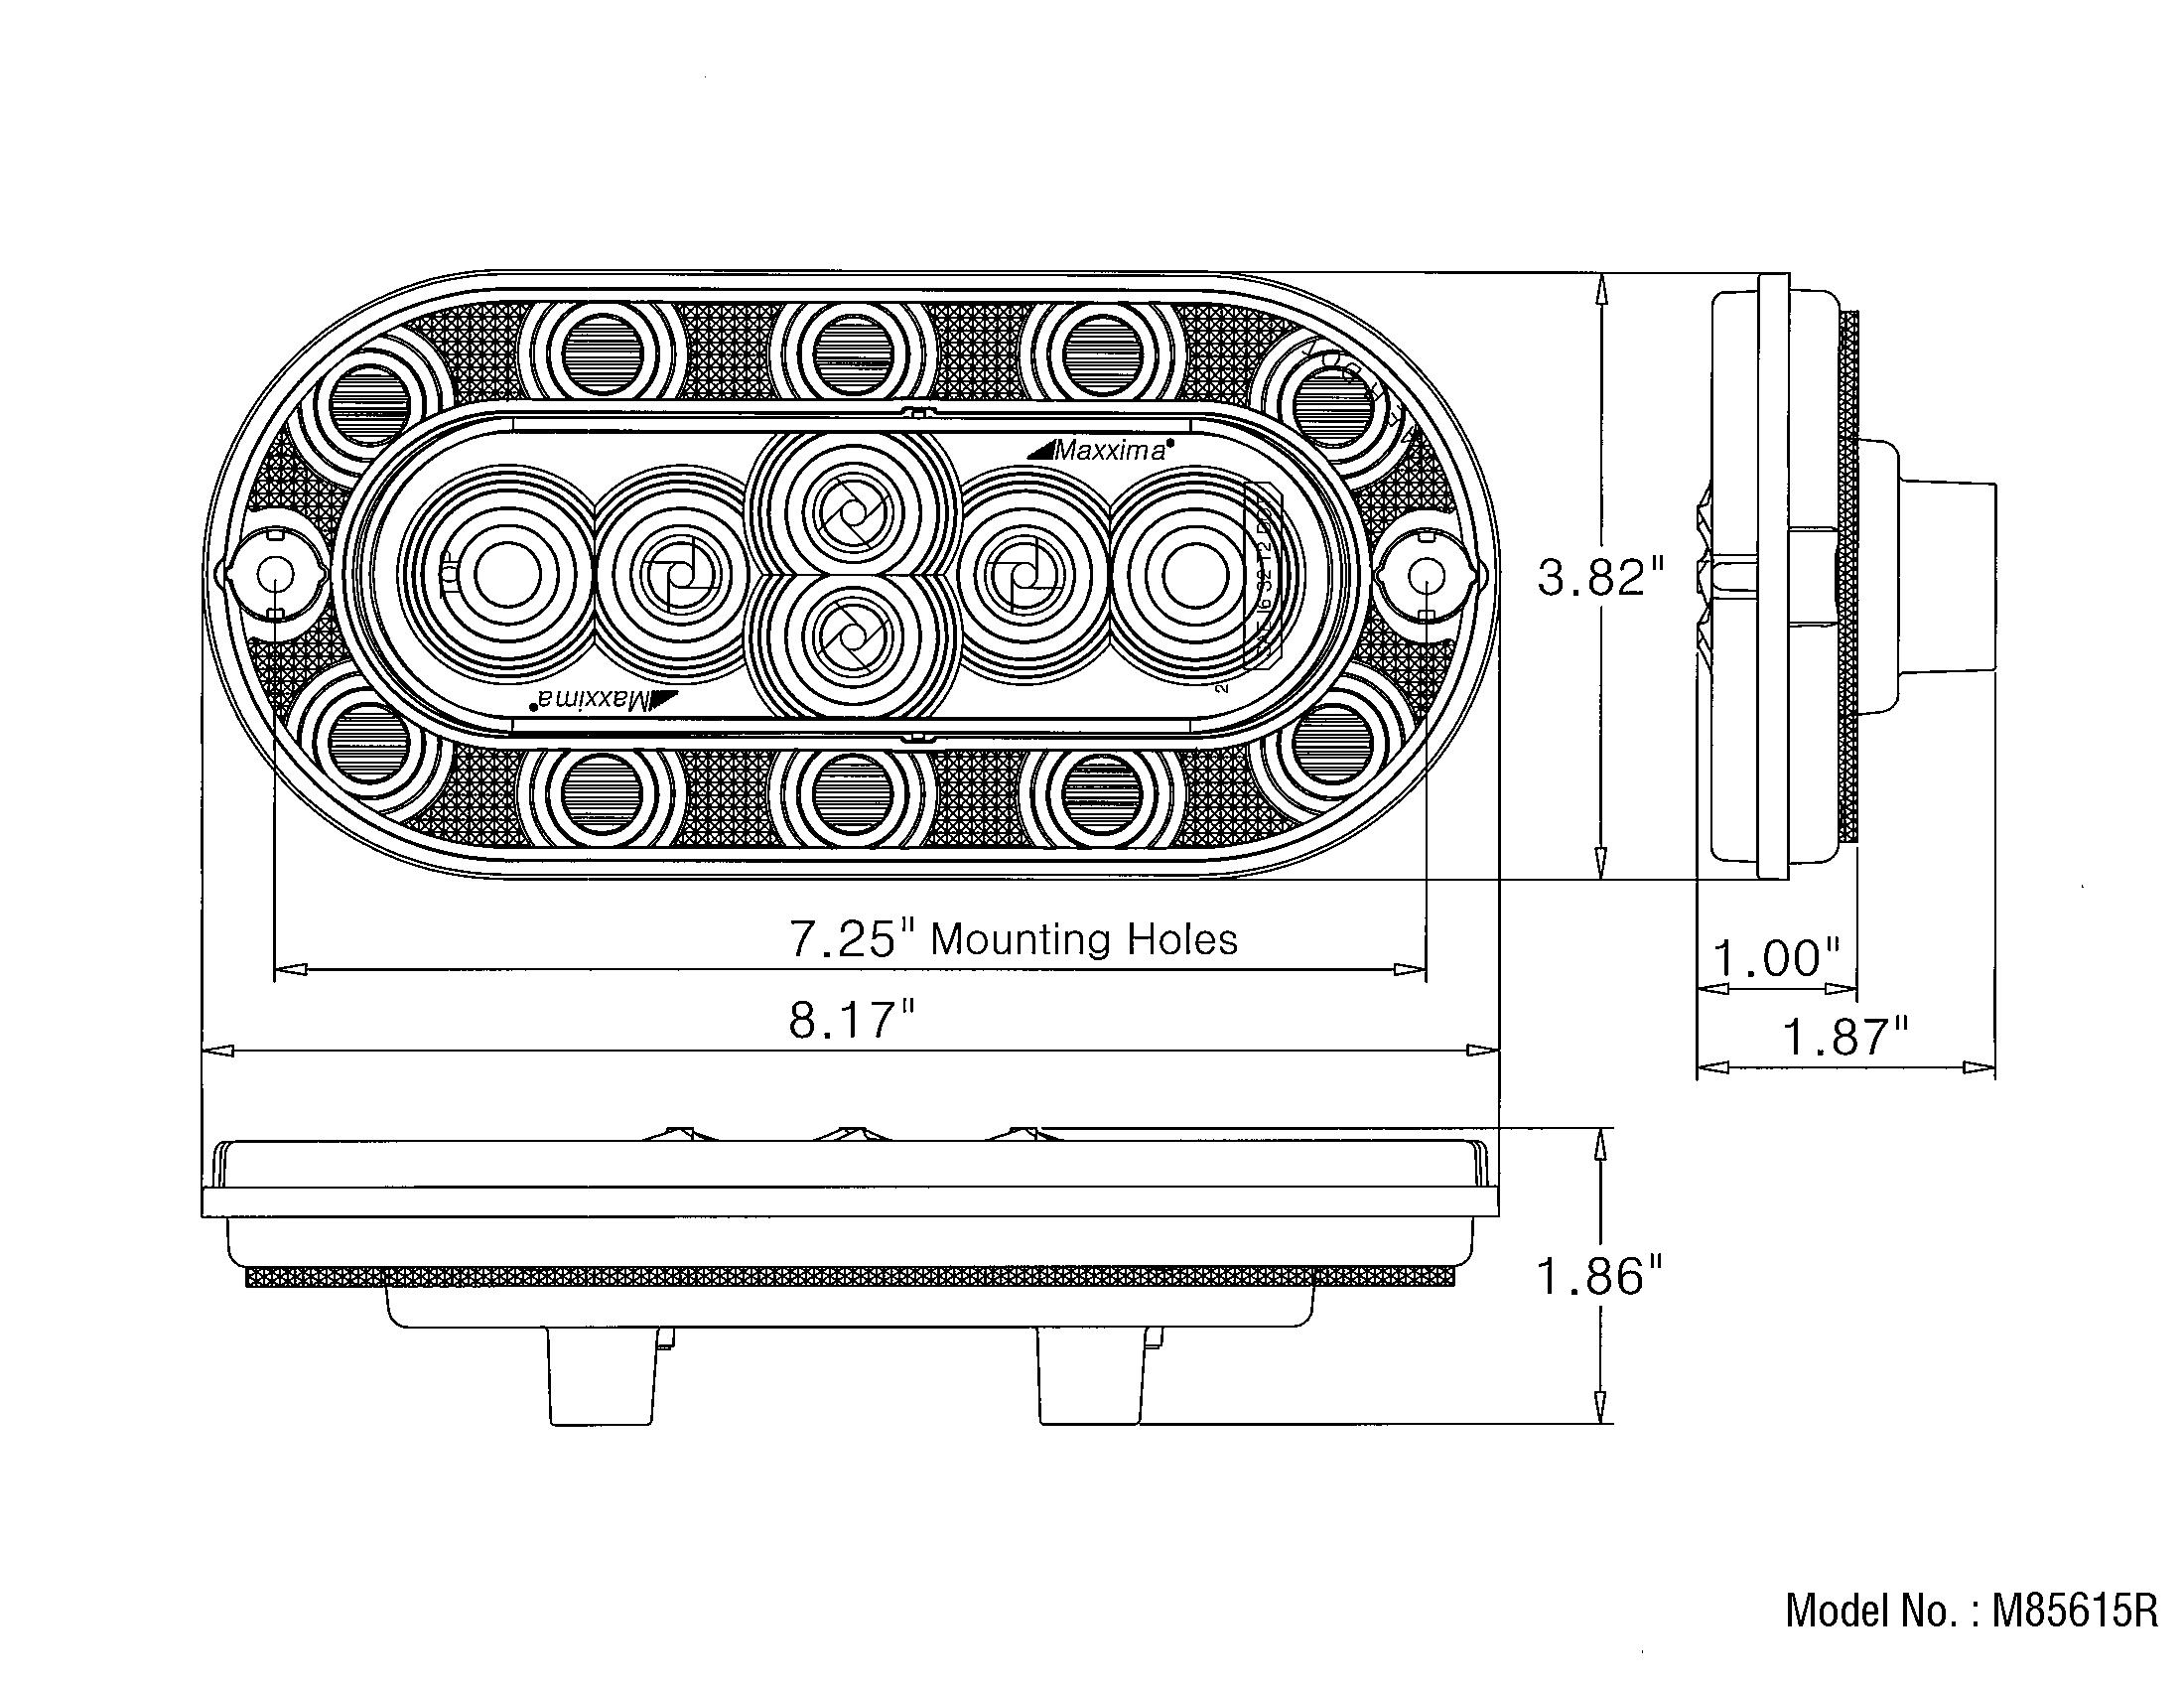 Maxxima Light Wiring Diagram : Fascinating maxxima led tail lights wiring diagram